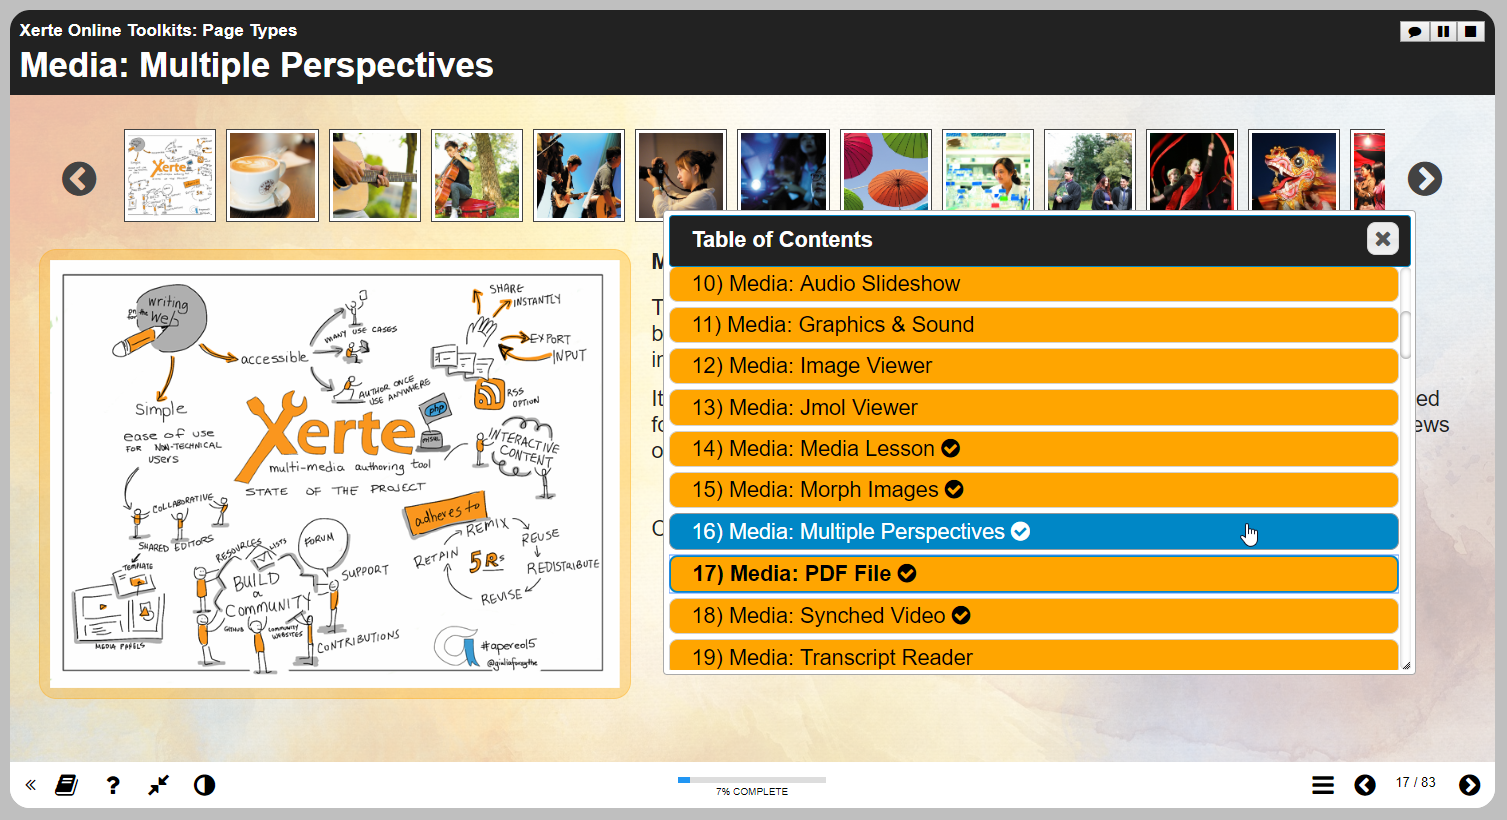 Multiple perspectives page type showing various images and videos